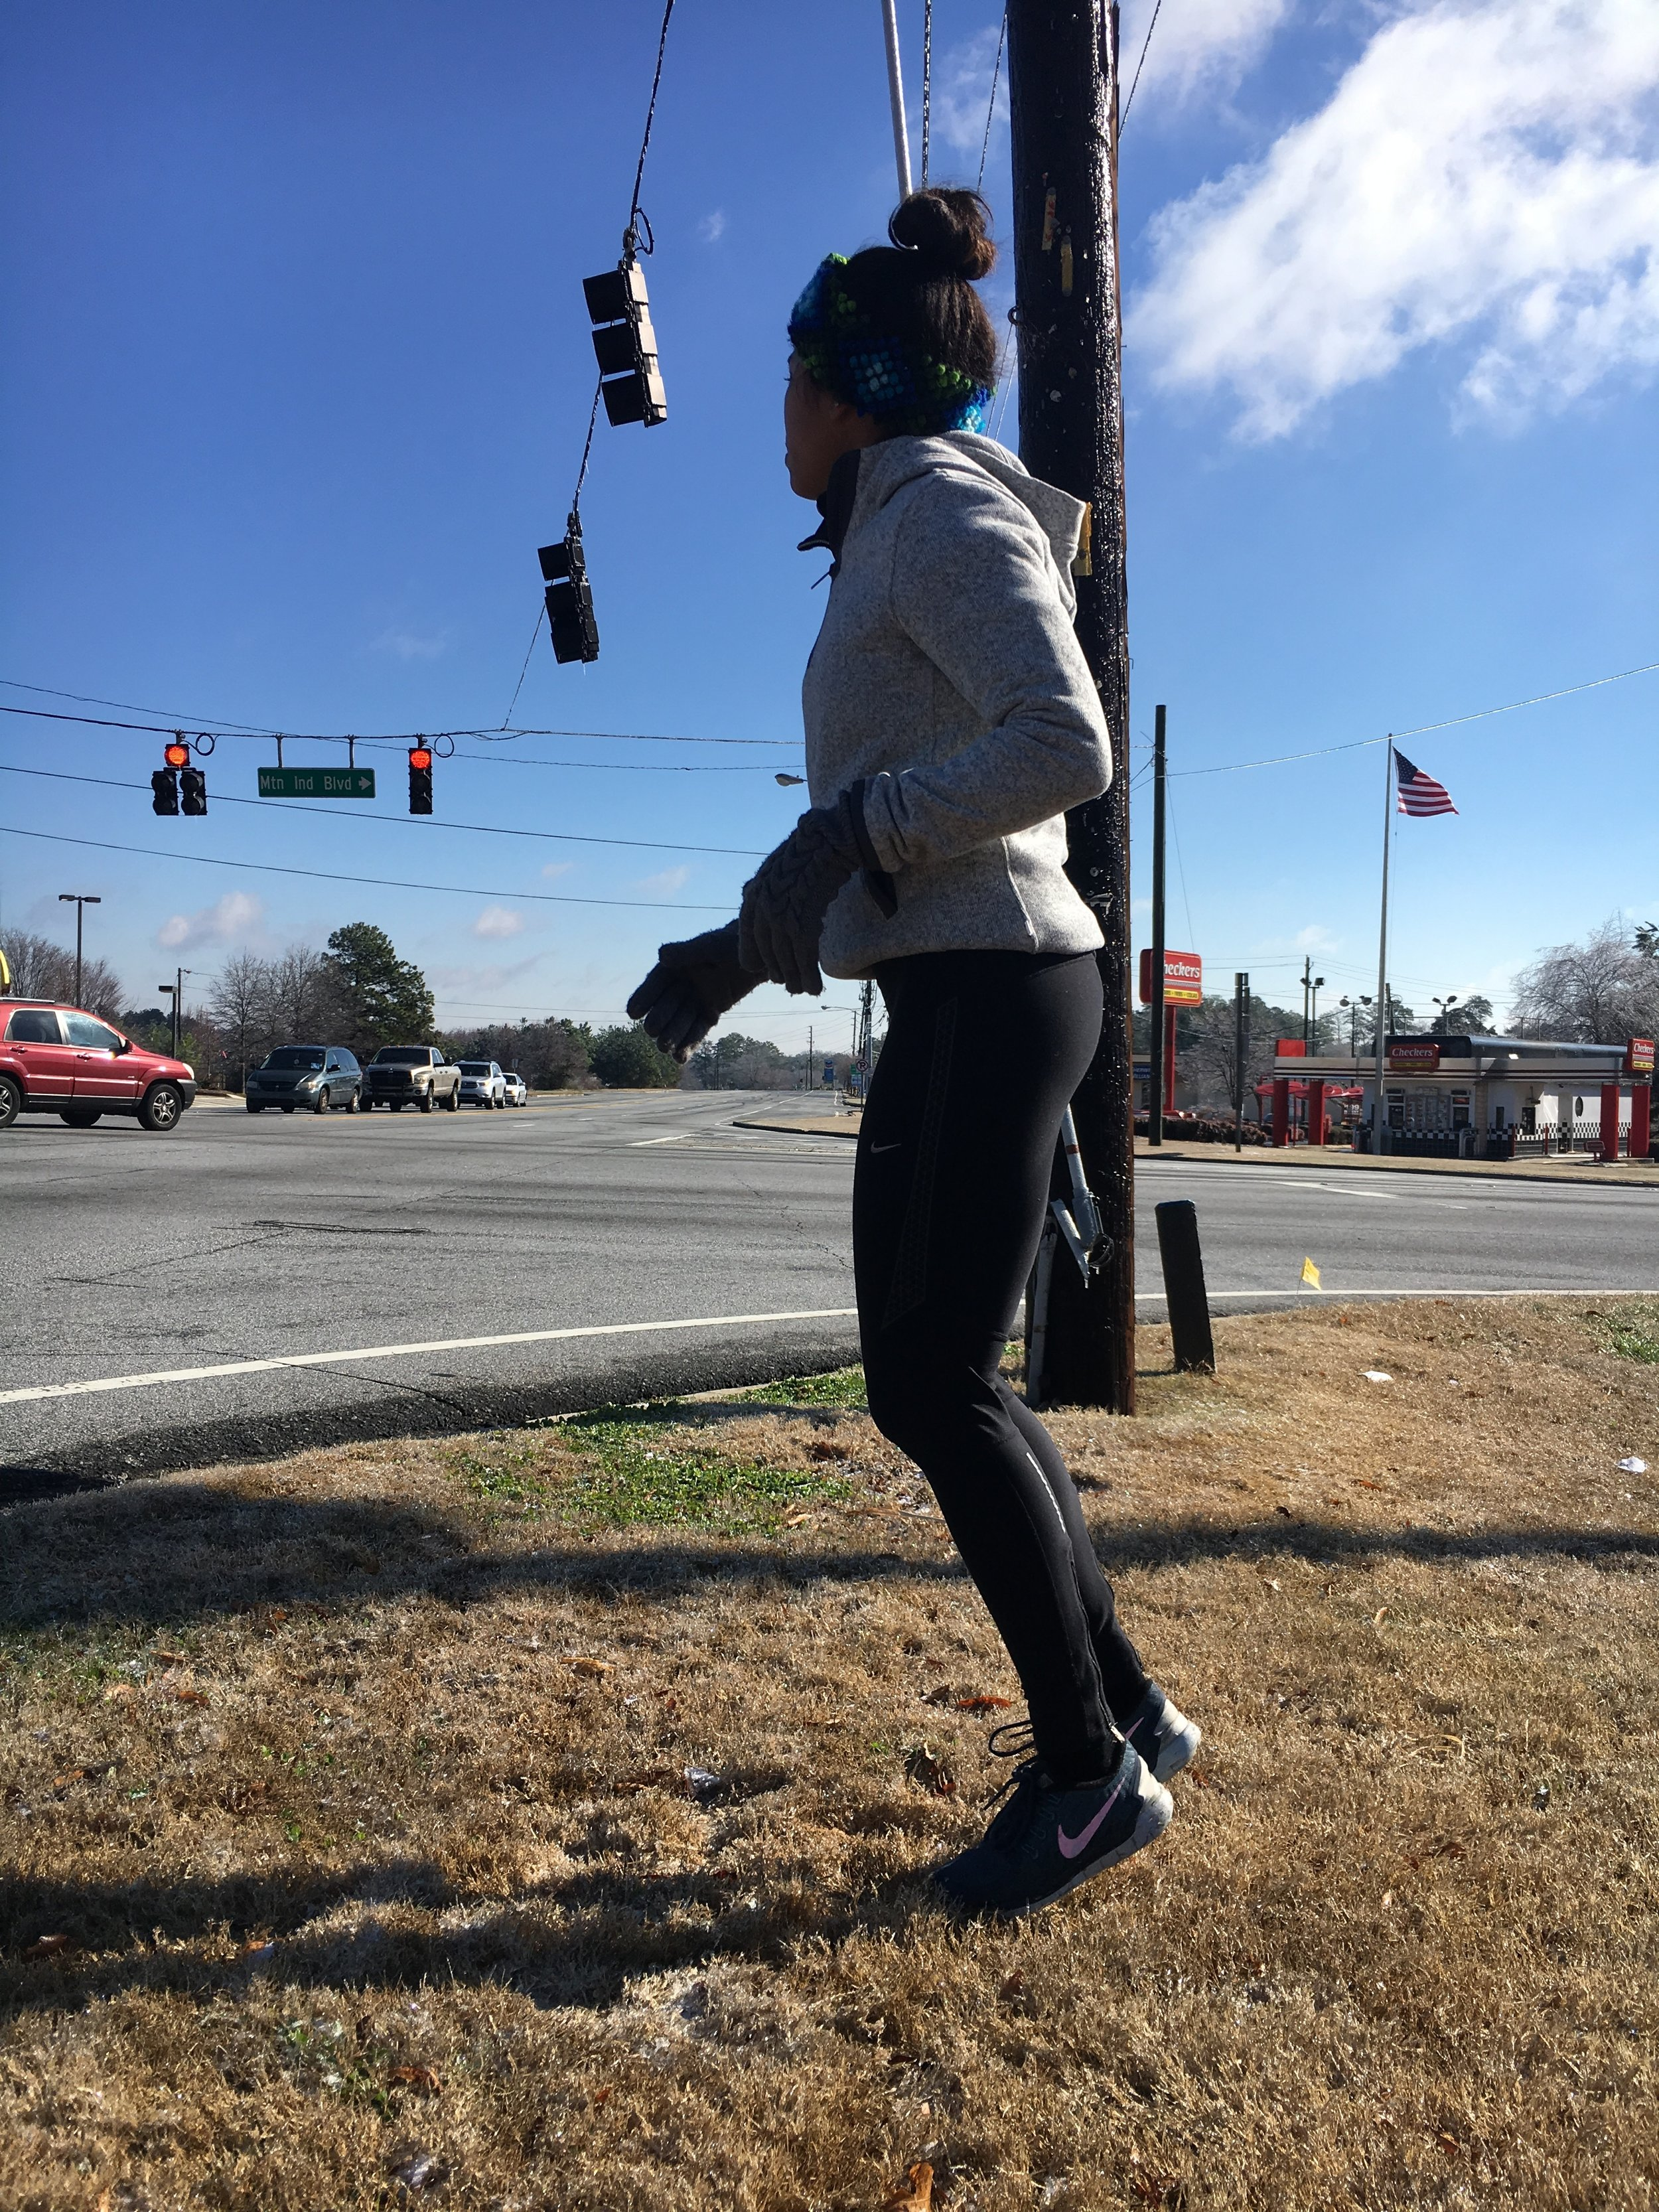 Jogging in place at a traffic light.